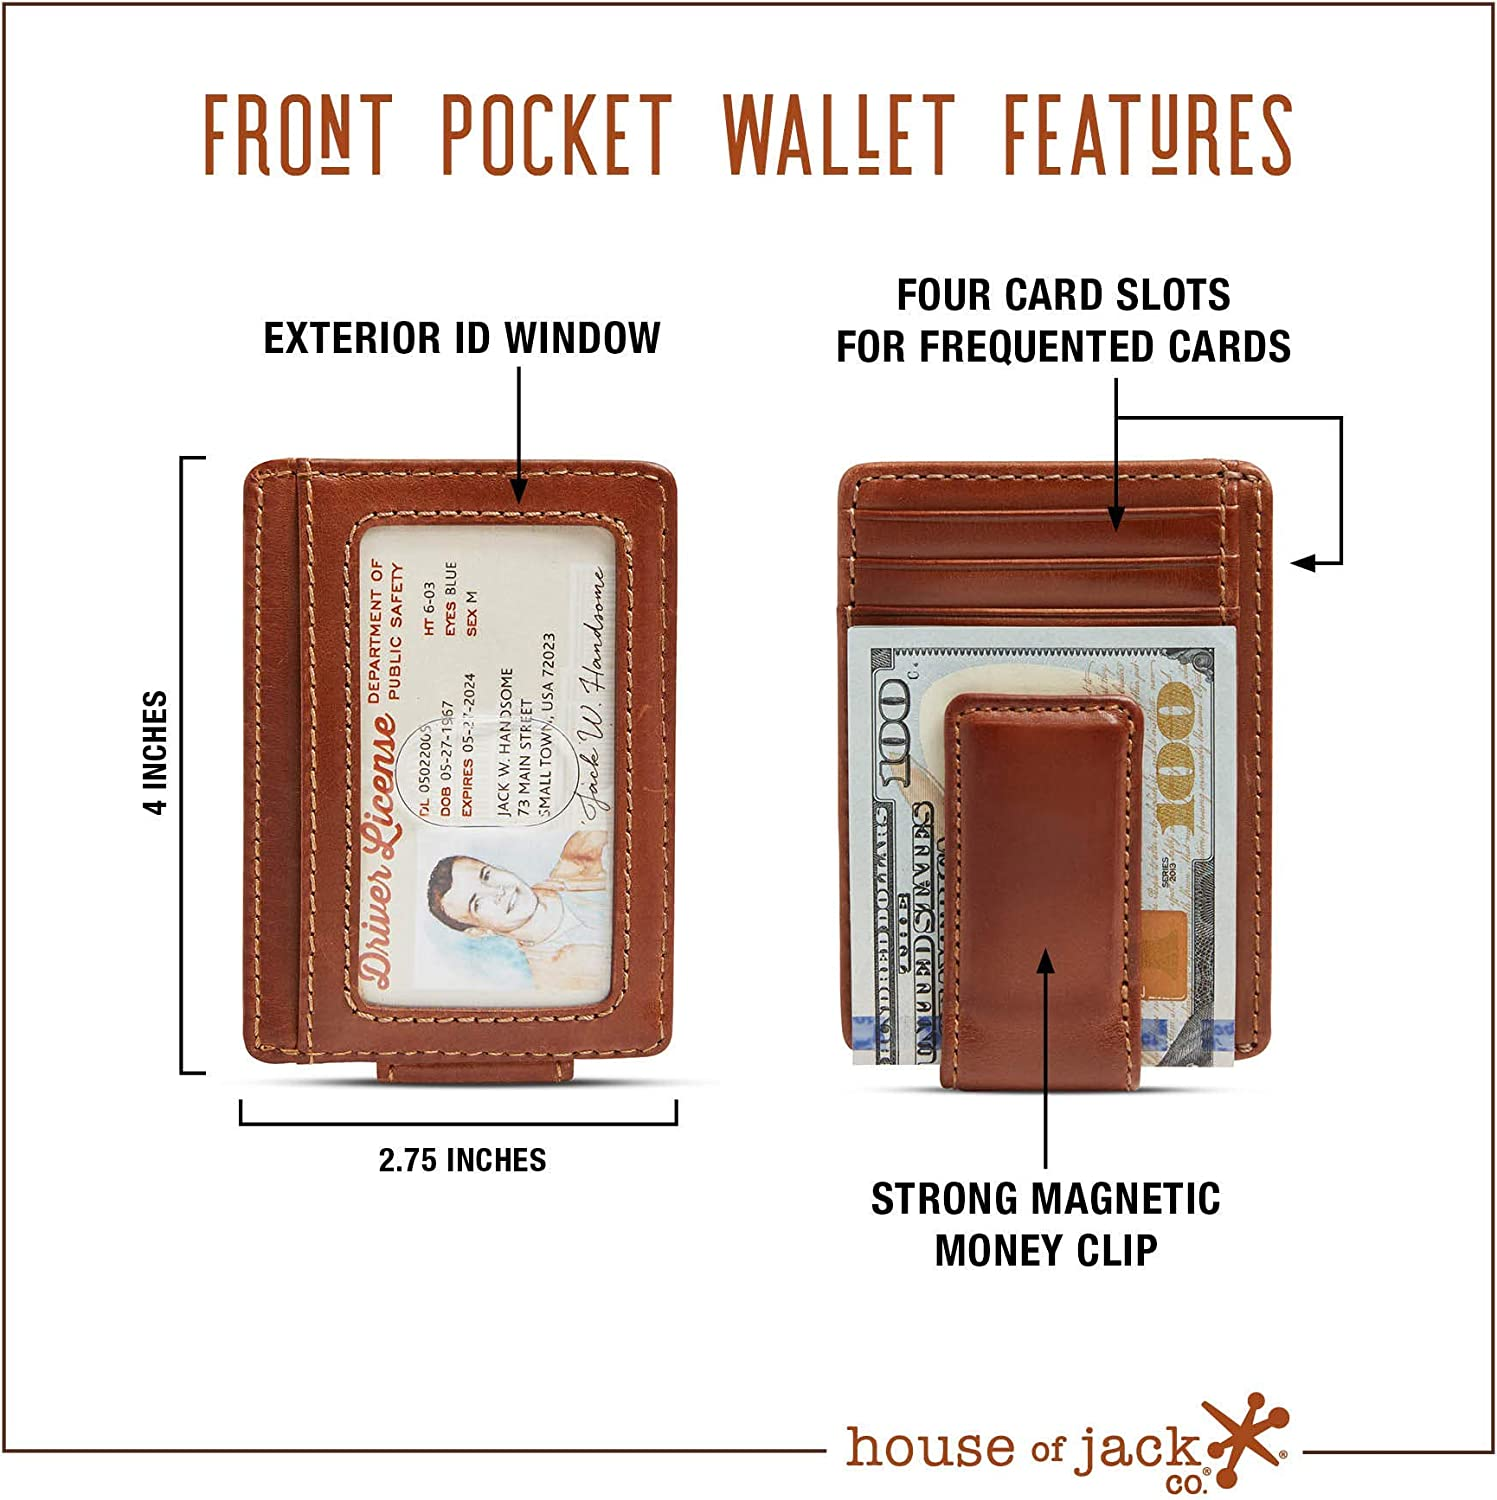 CARRYALL Mens Leather Money Clip Wallet-Strong Magnetic Front Pocket Wallet-Exterior ID Window HOJ Co